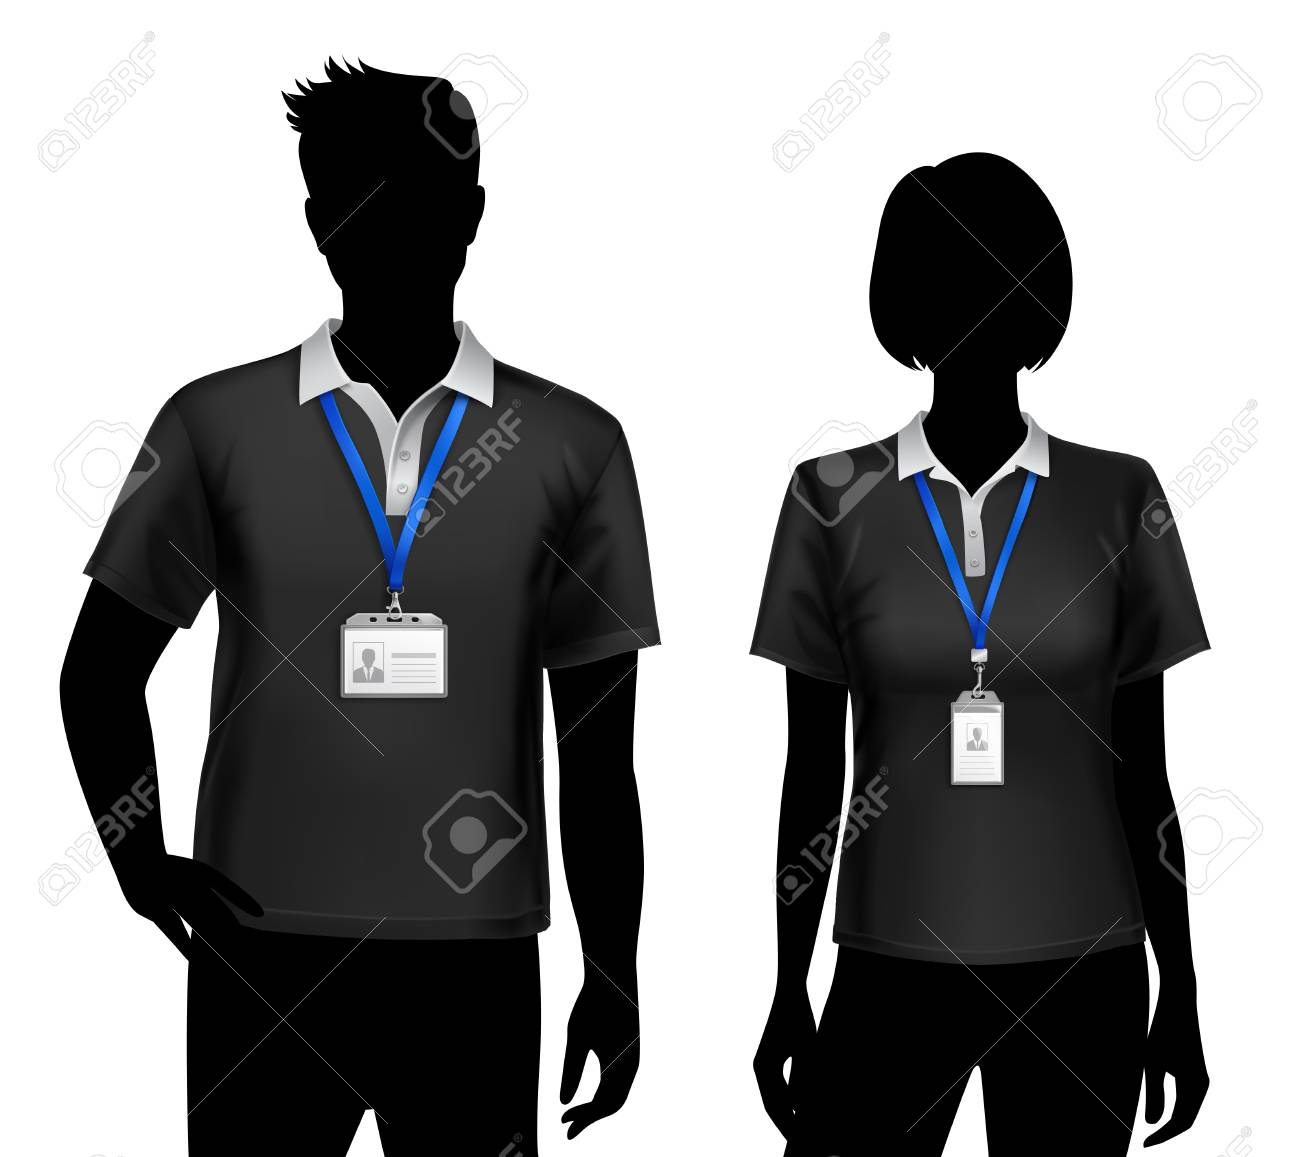 Black silhouettes of staff members man woman standing with blue lanyard id card badges holders vector illustration - 88130471